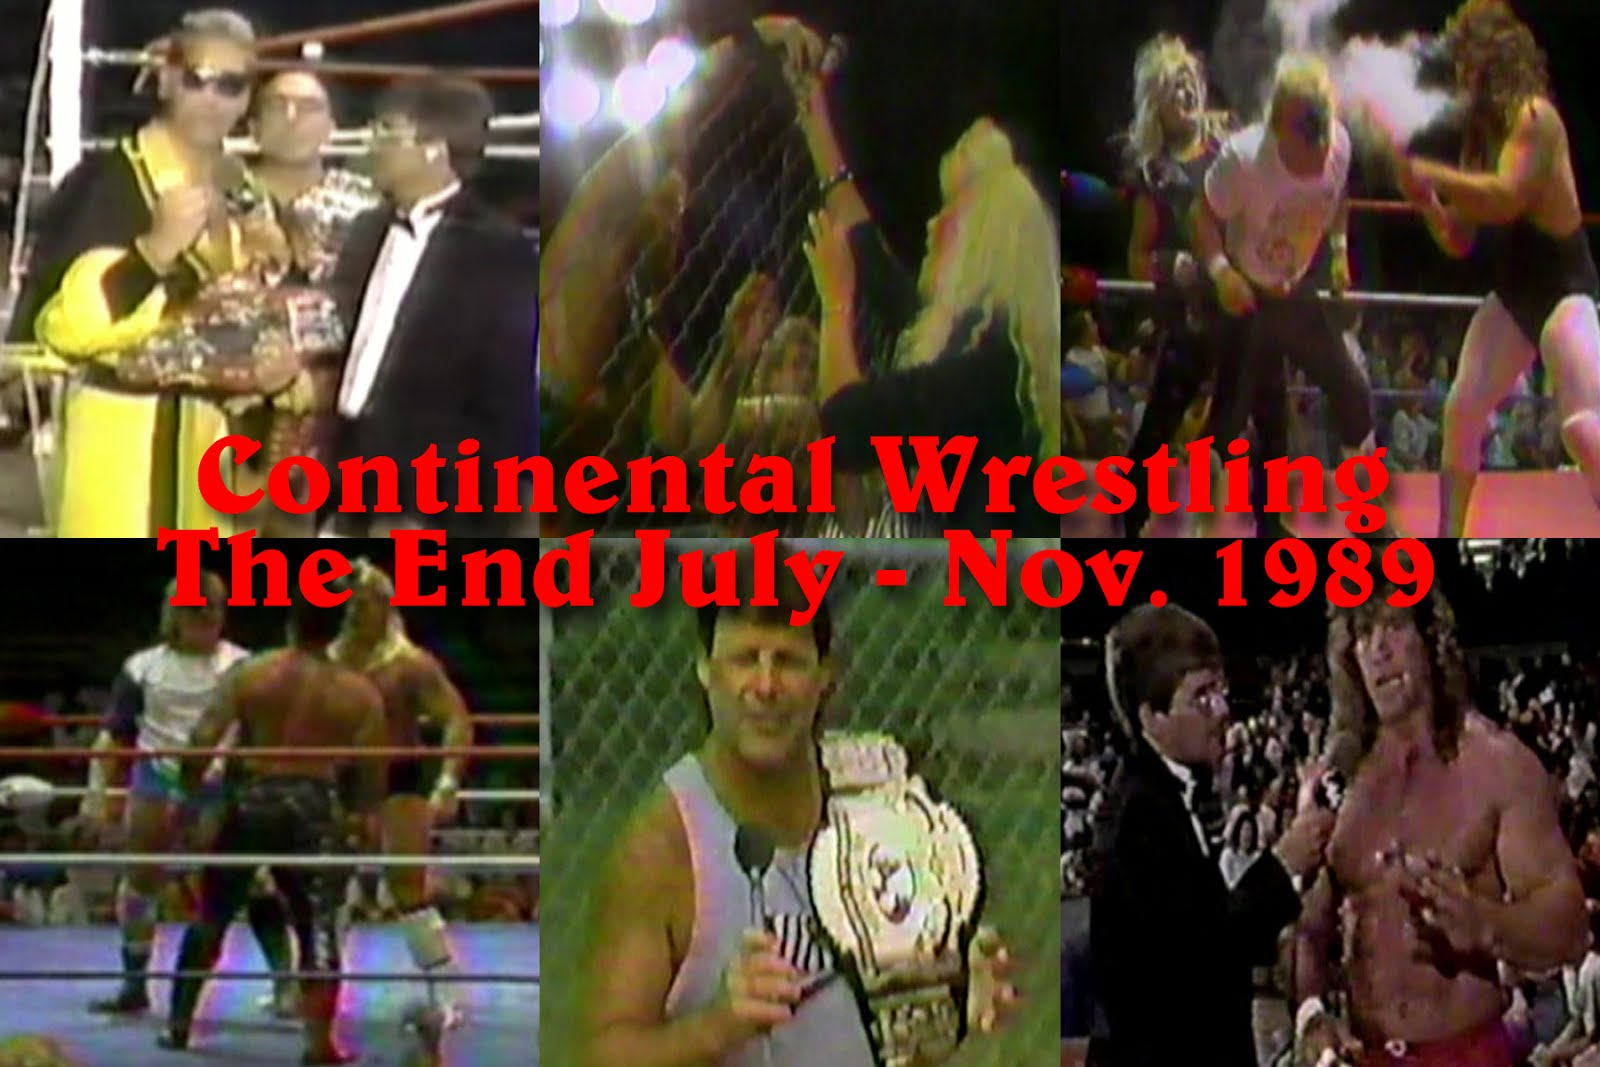 NEW The End of Continental Wrestling